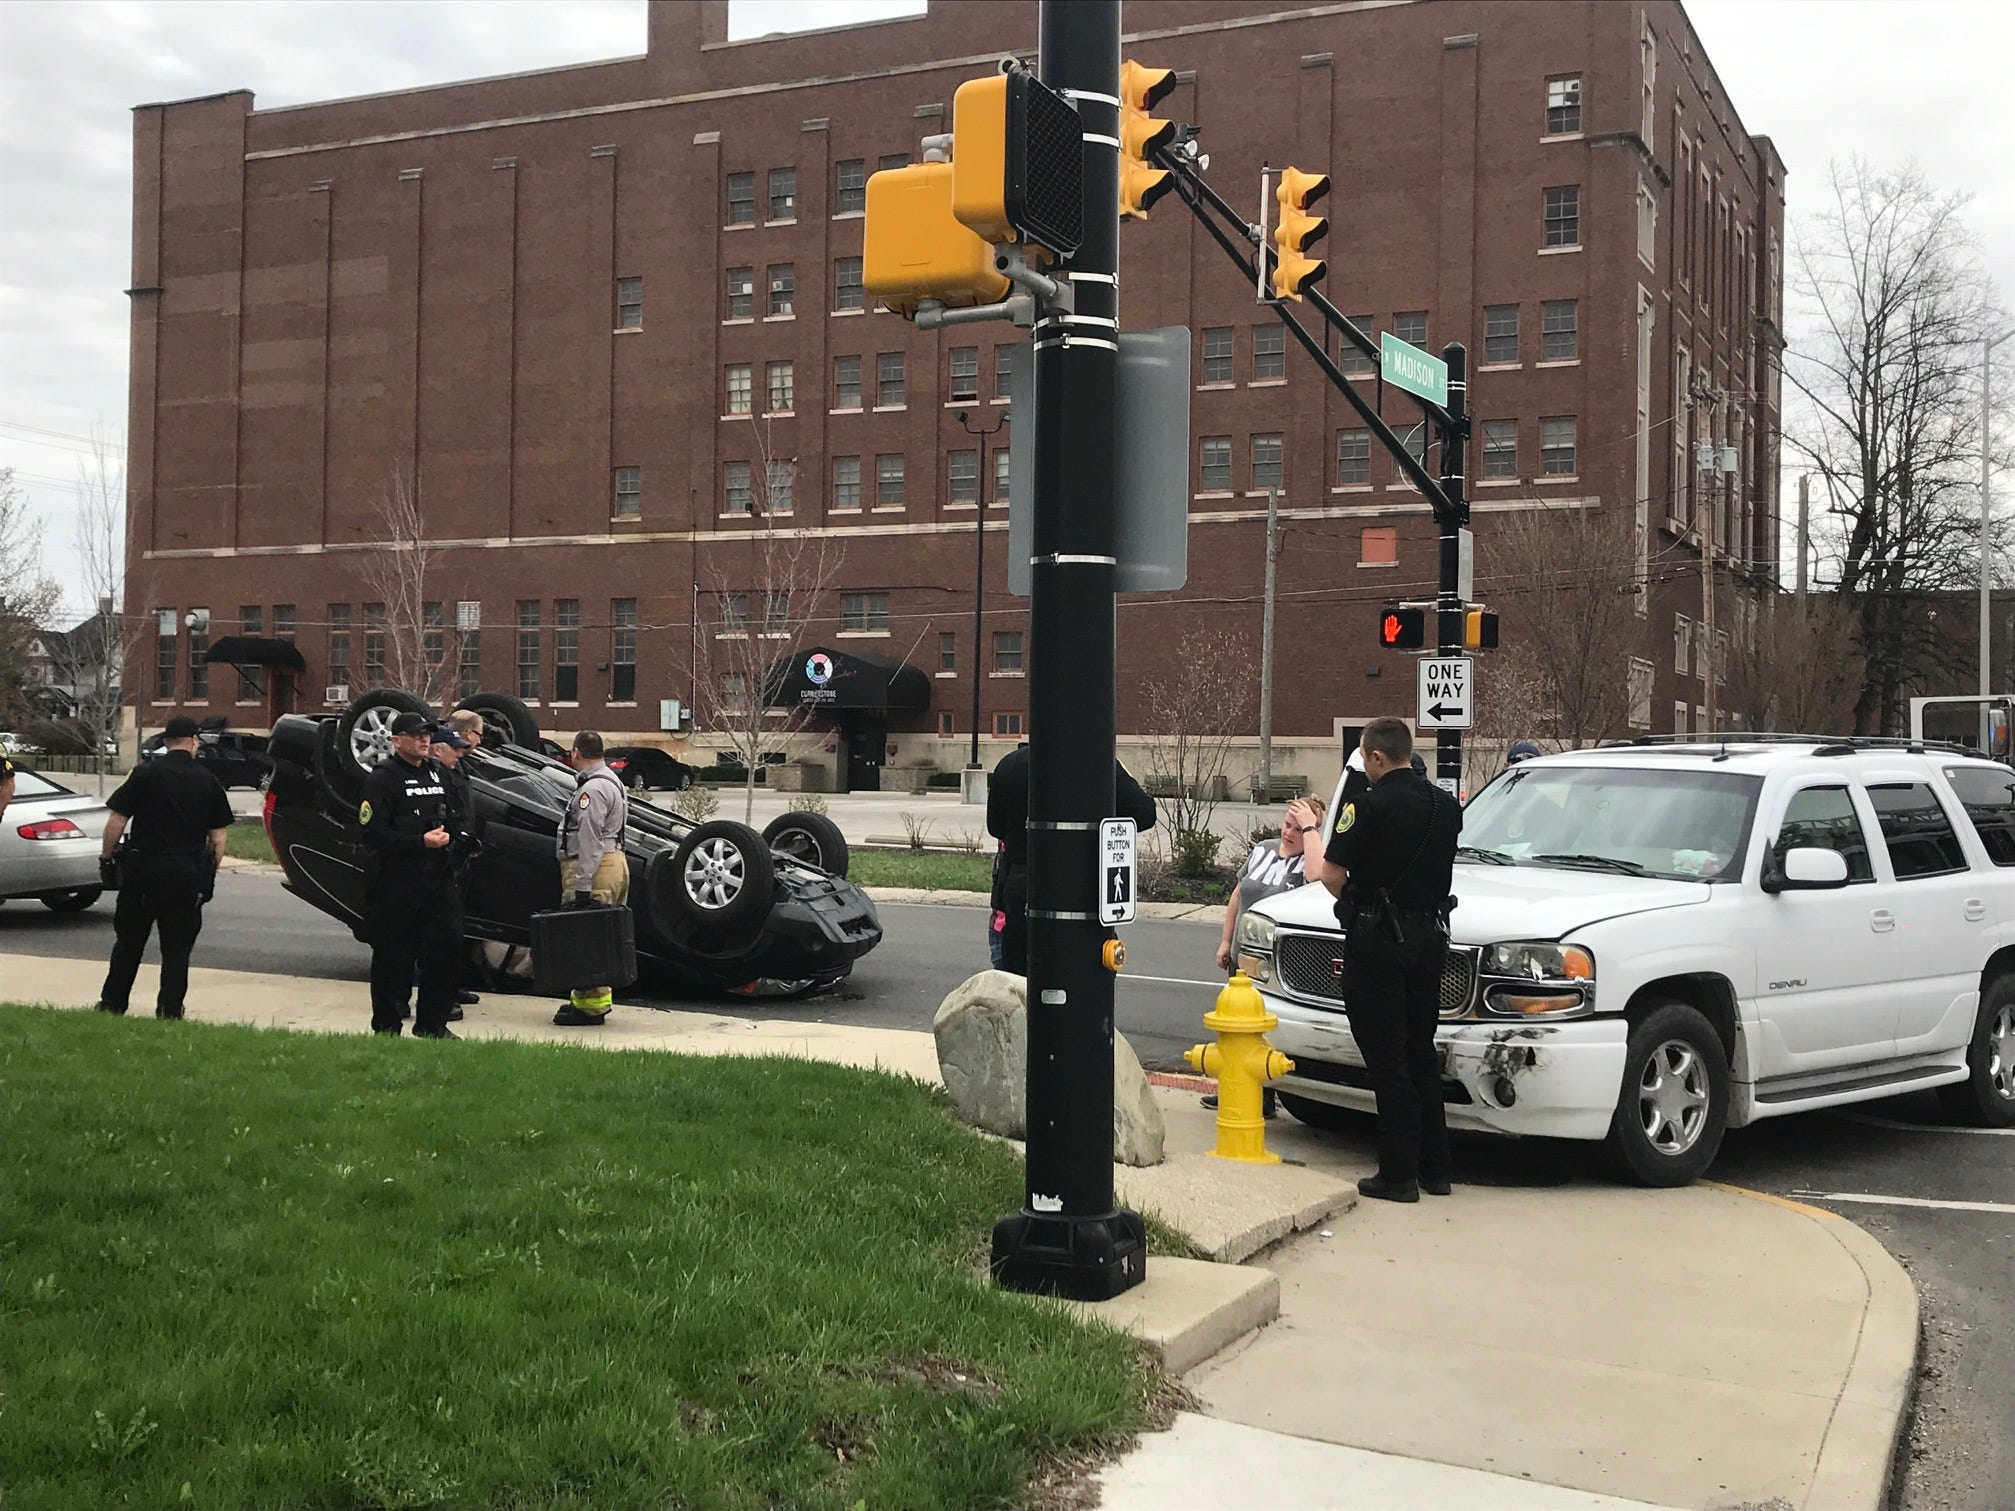 A Wednesday traffic accident at Washington and Madison streets left a Honda vehicle on its roof.